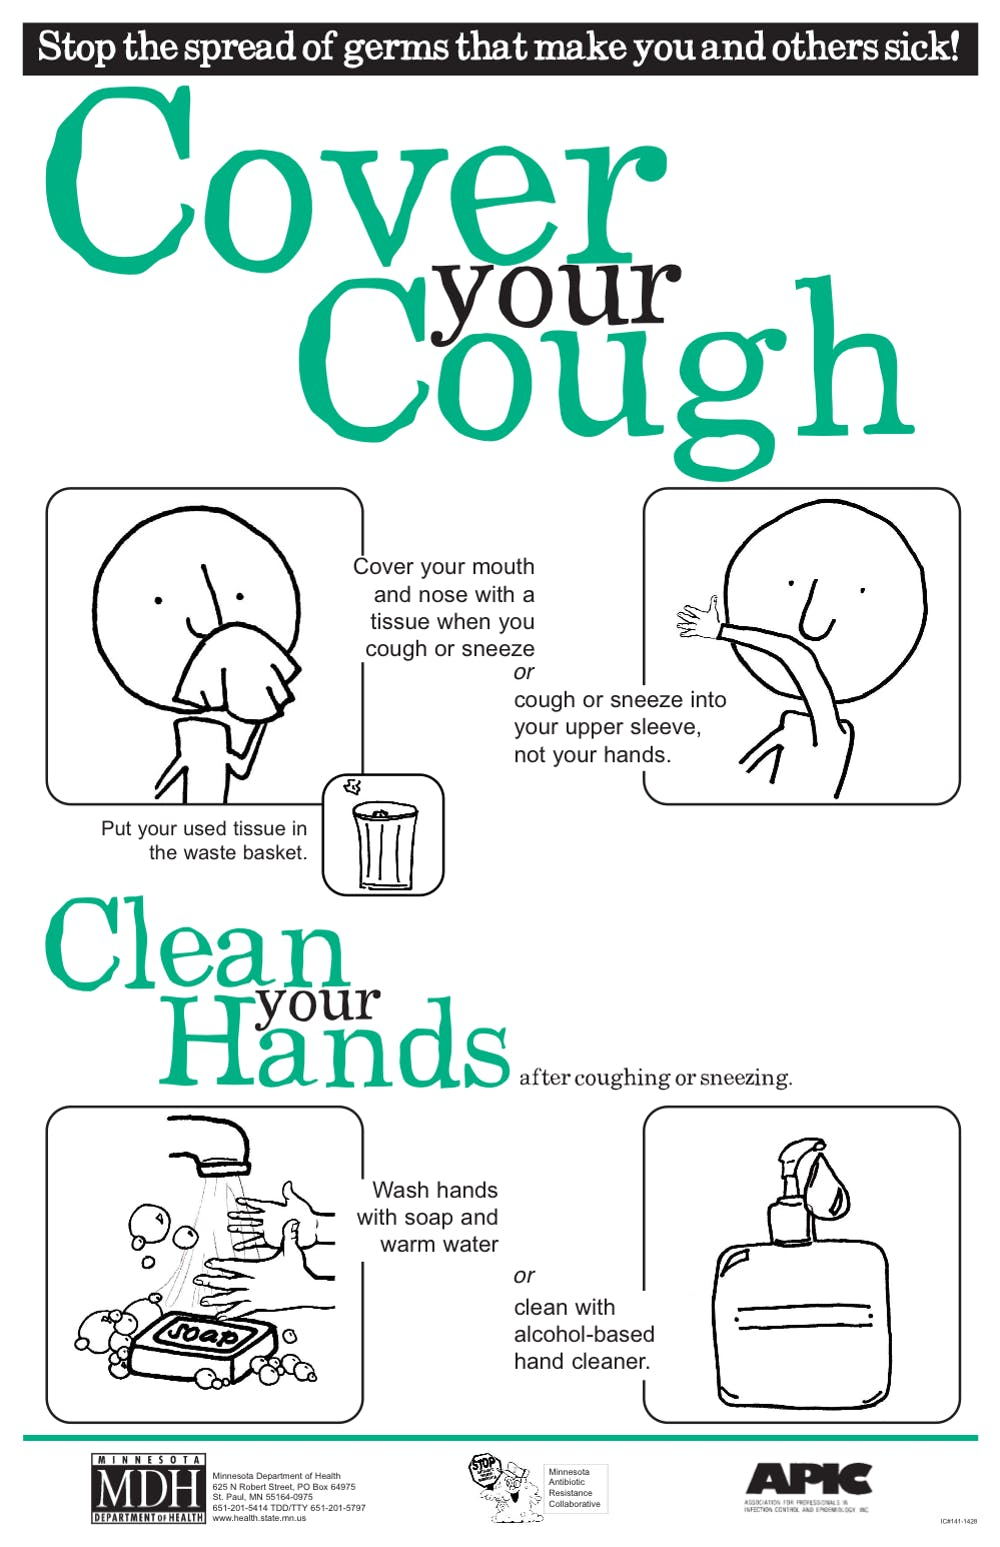 Flu clipart cover cough. And sneeze into elbows